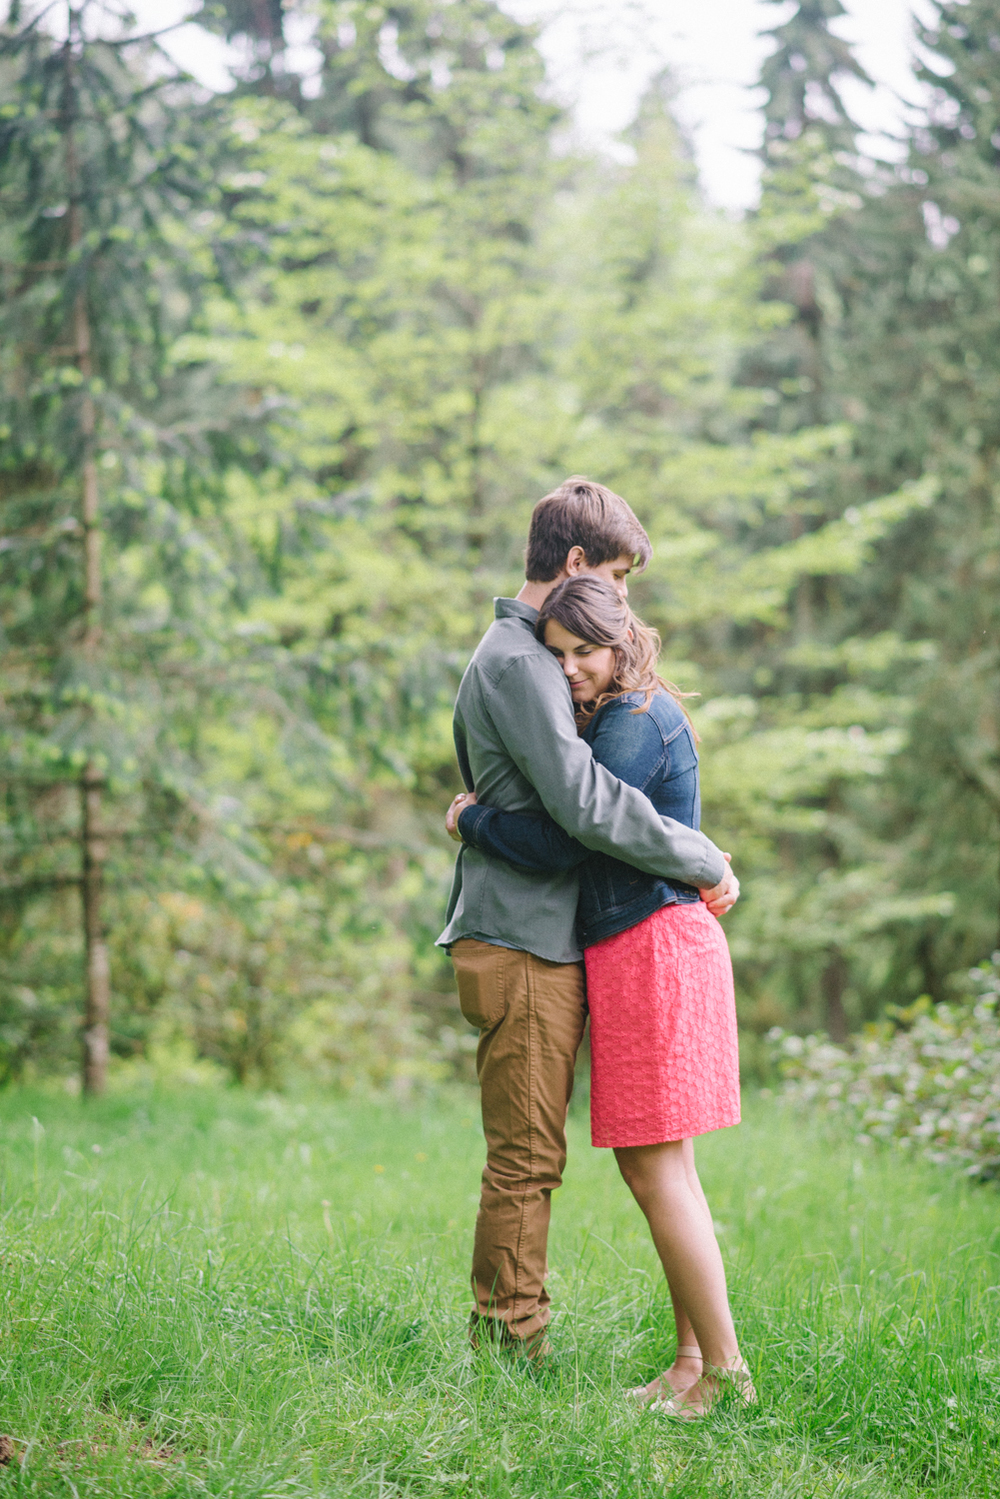 Portland-oregon-engagement-session-photographer-hoyt-arboretum-washington-park-shelley-marie-photography-forest-natural-woodland-kiss-hug-20